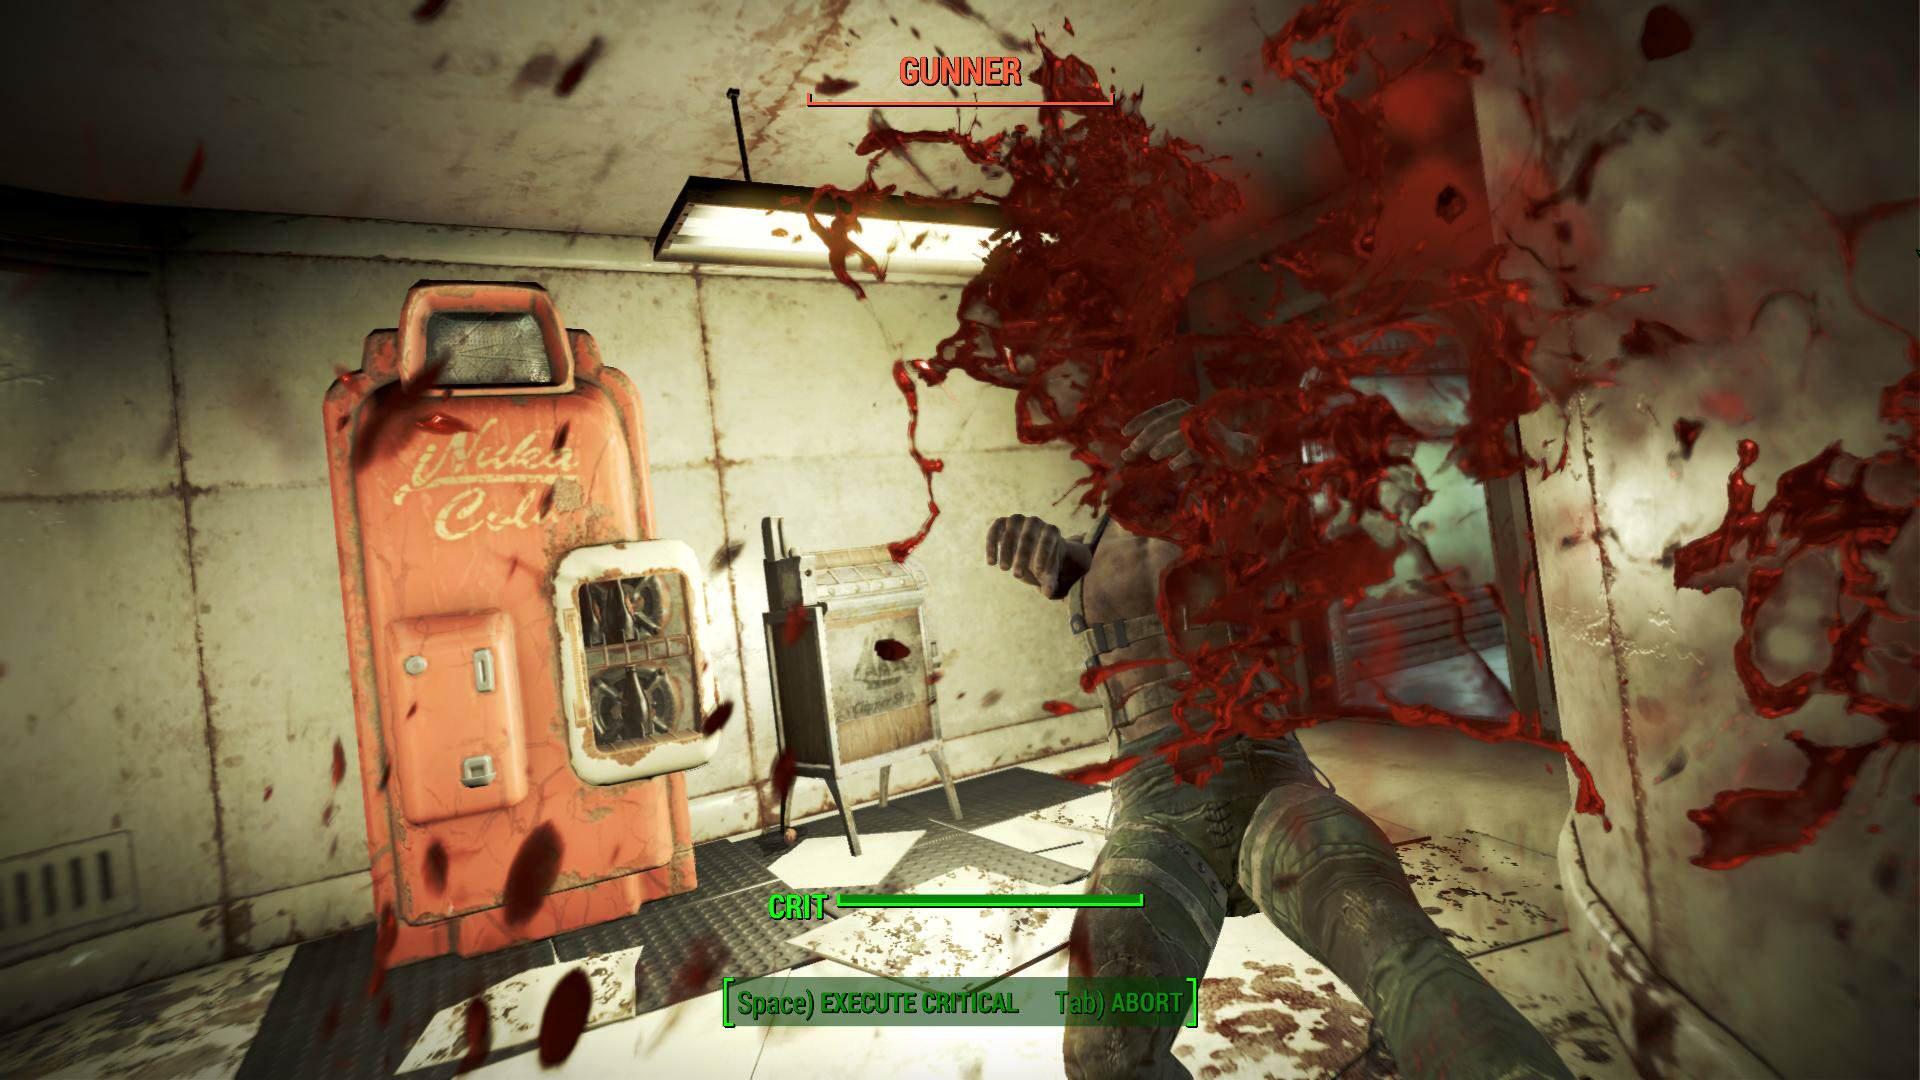 Details Emerge For Fallout 4s Brutal New Survival Mode Fallout 4 VATS gore